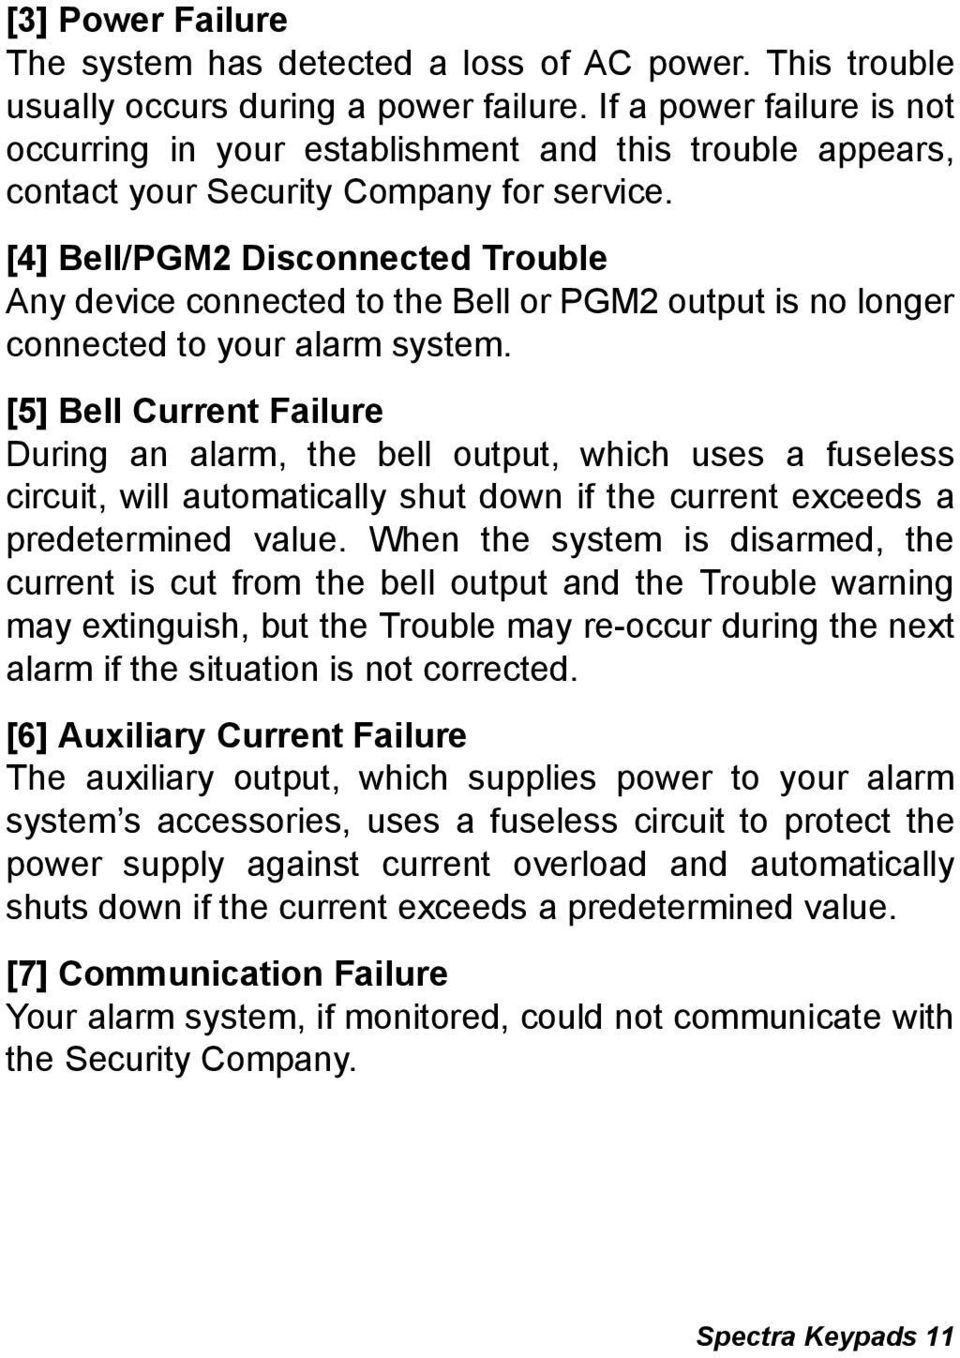 [4] Bell/PGM2 Disconnected Trouble Any device connected to the Bell or PGM2 output is no longer connected to your alarm system.